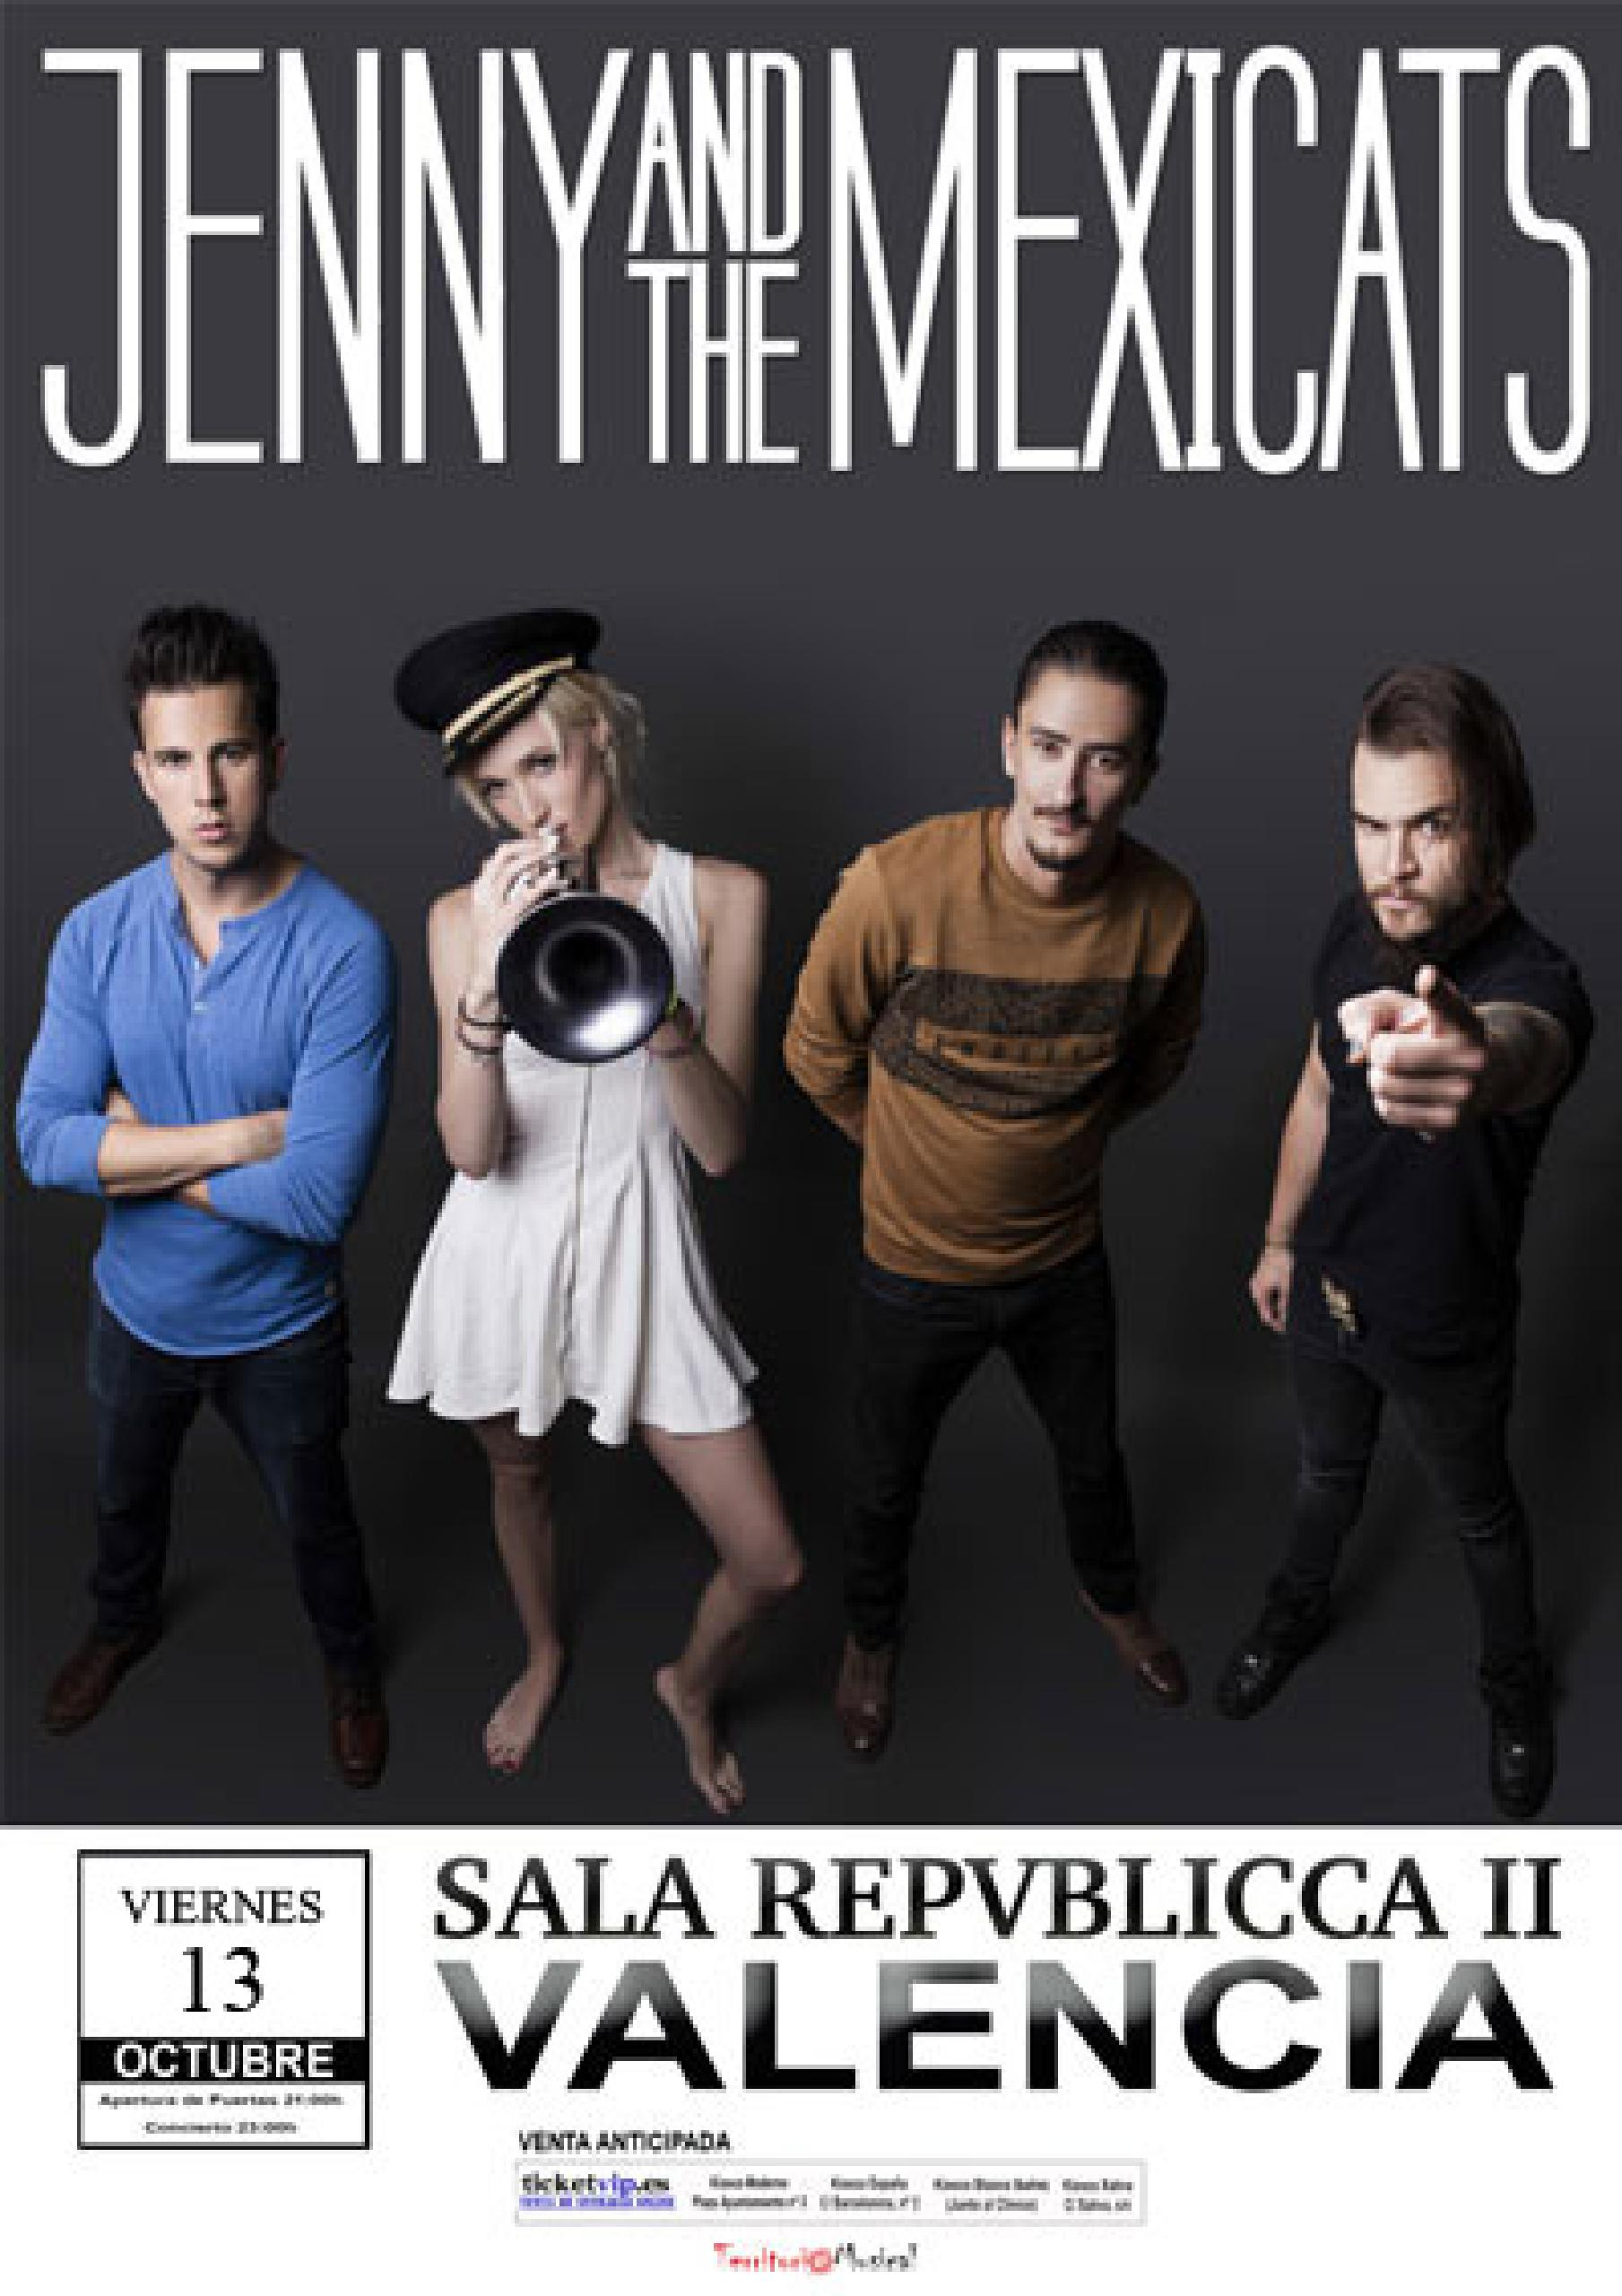 jenny and the mexicats en Valencia